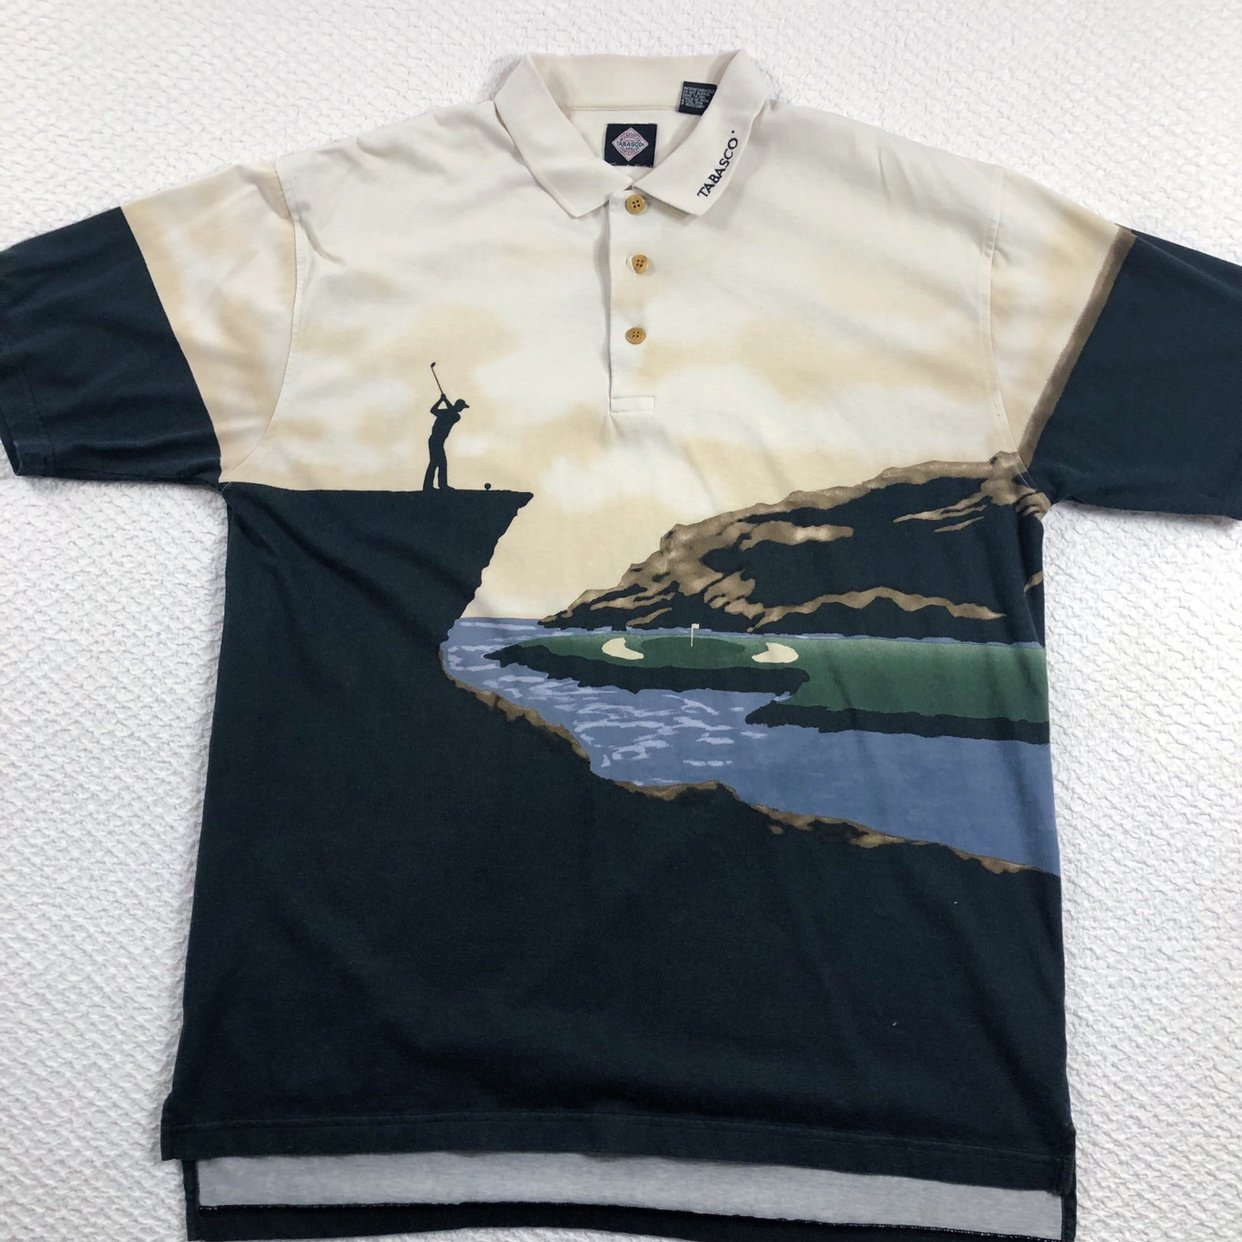 A Tabasco Golf Shirt Will Give you Some Spice